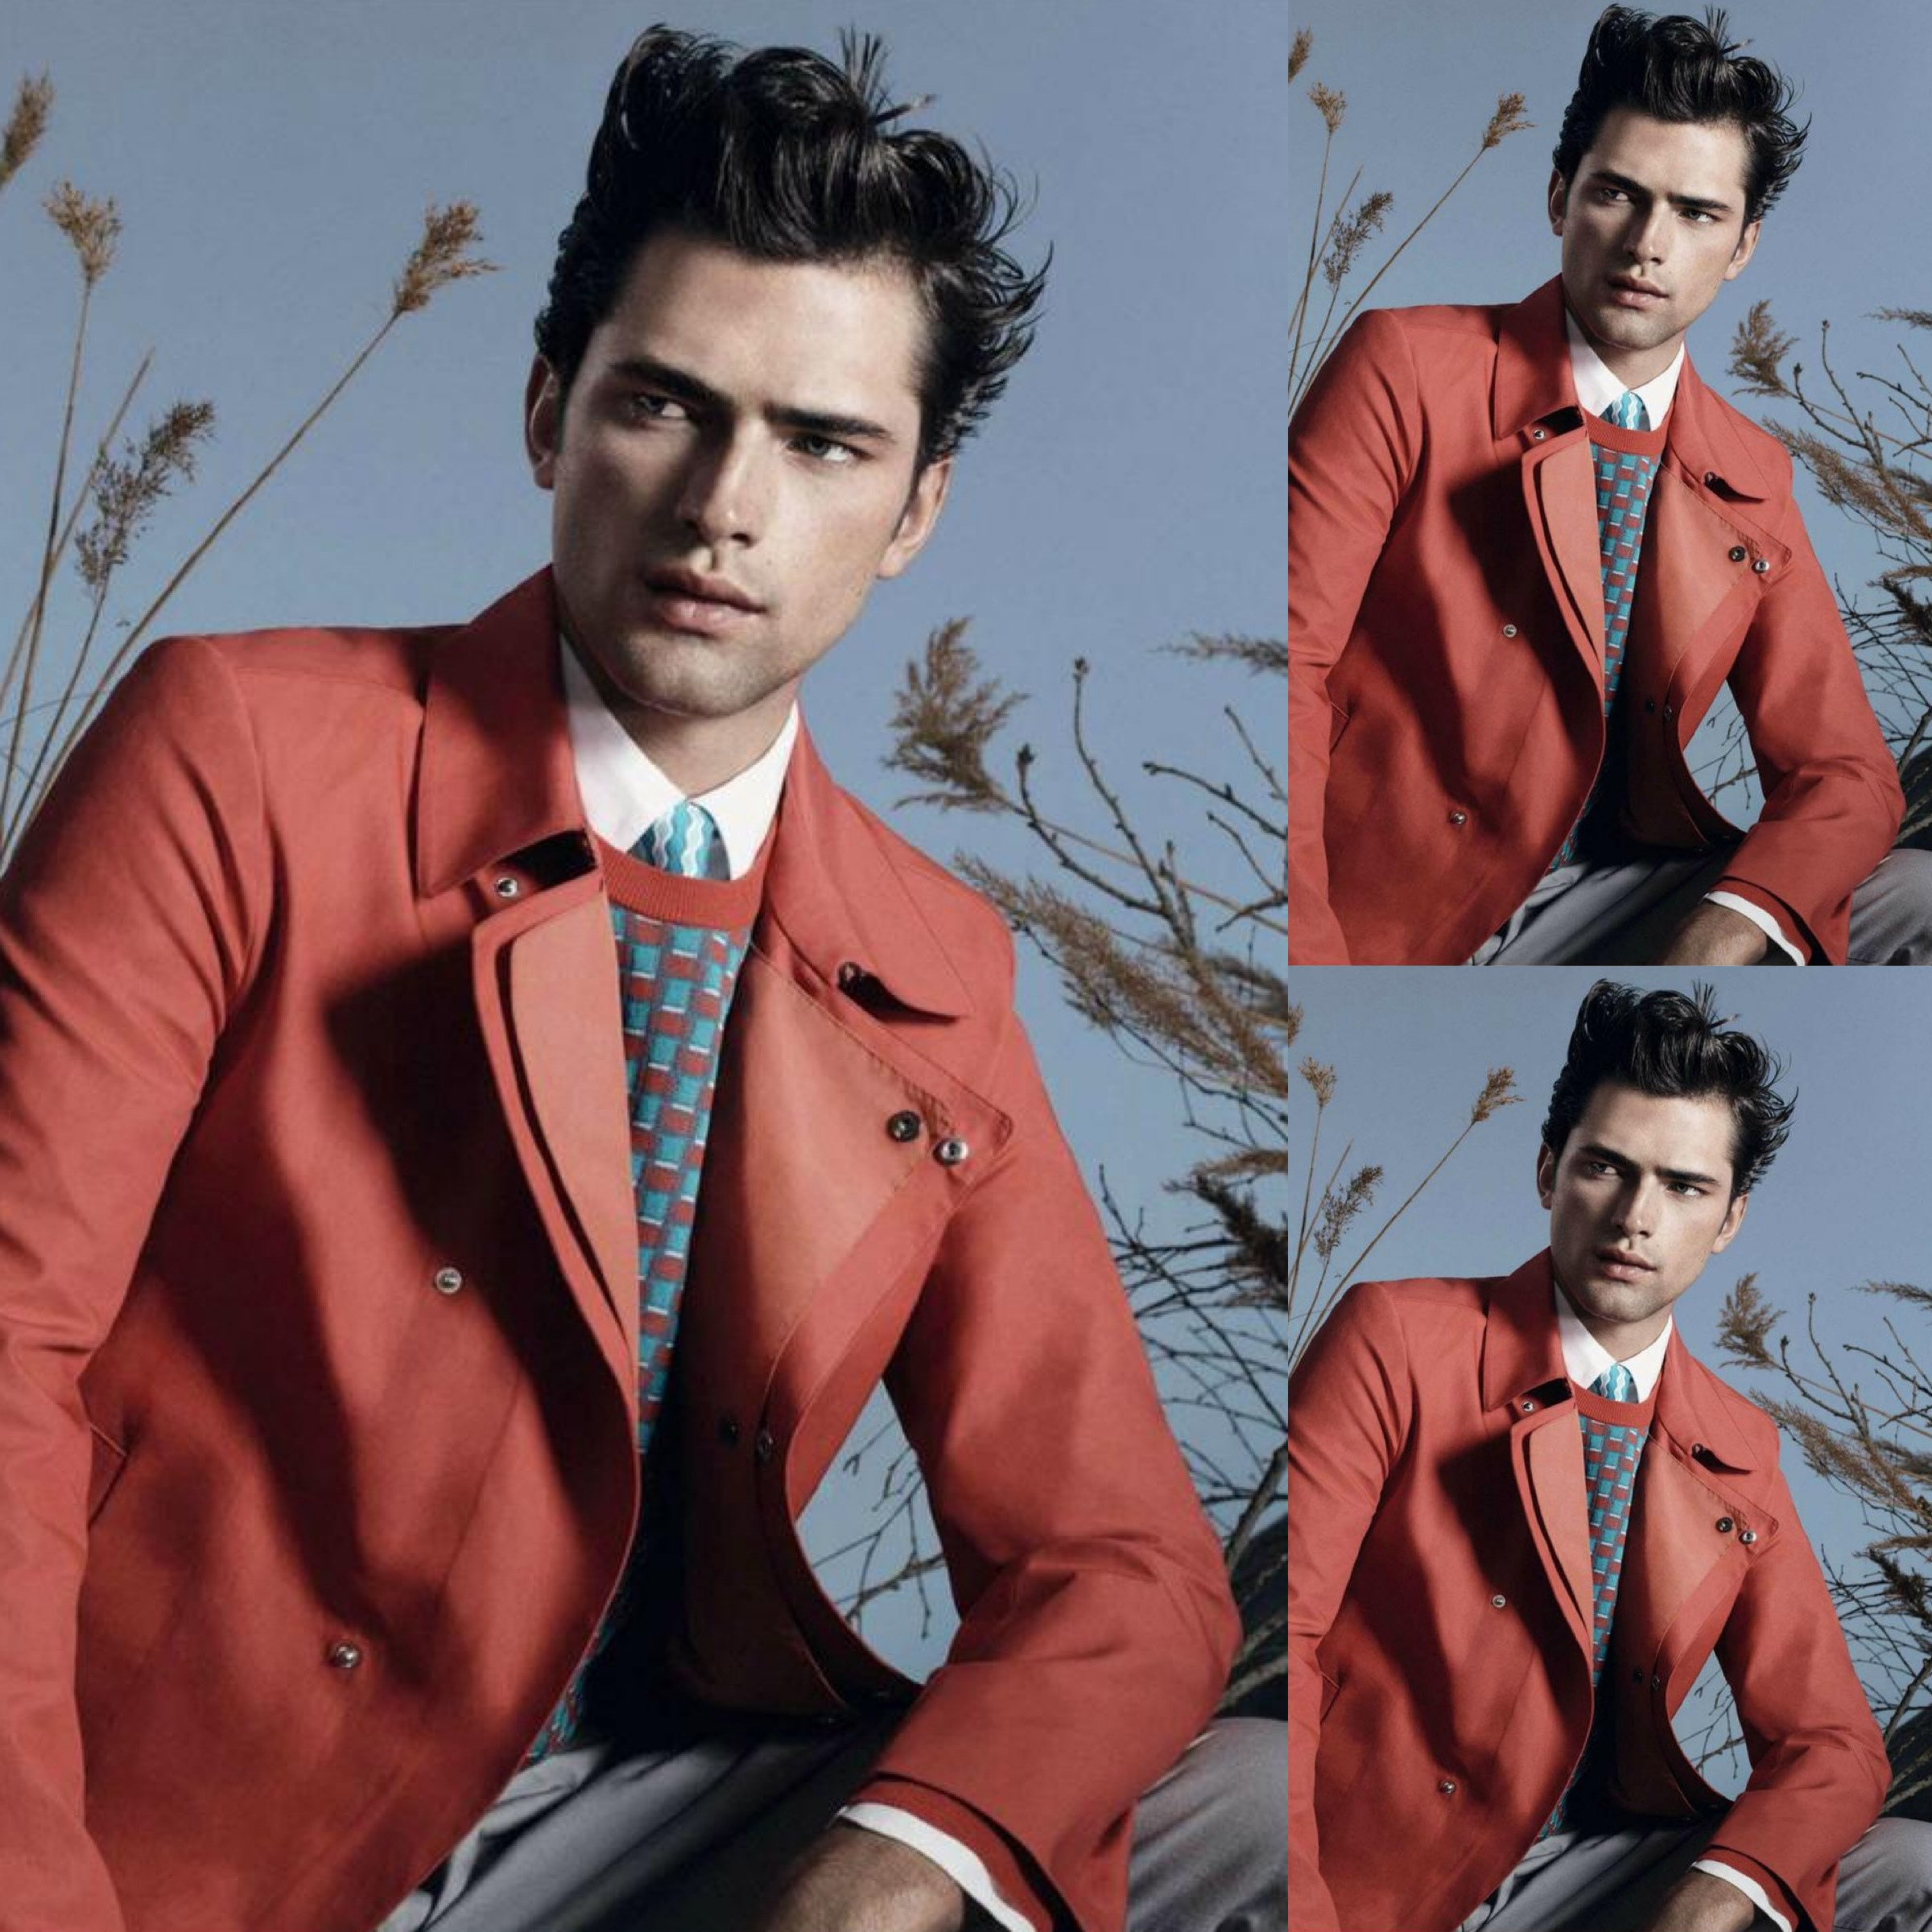 #1 - Sean O'Pry for Salvatore Ferragamo Spring Summer 2013 Lookbook